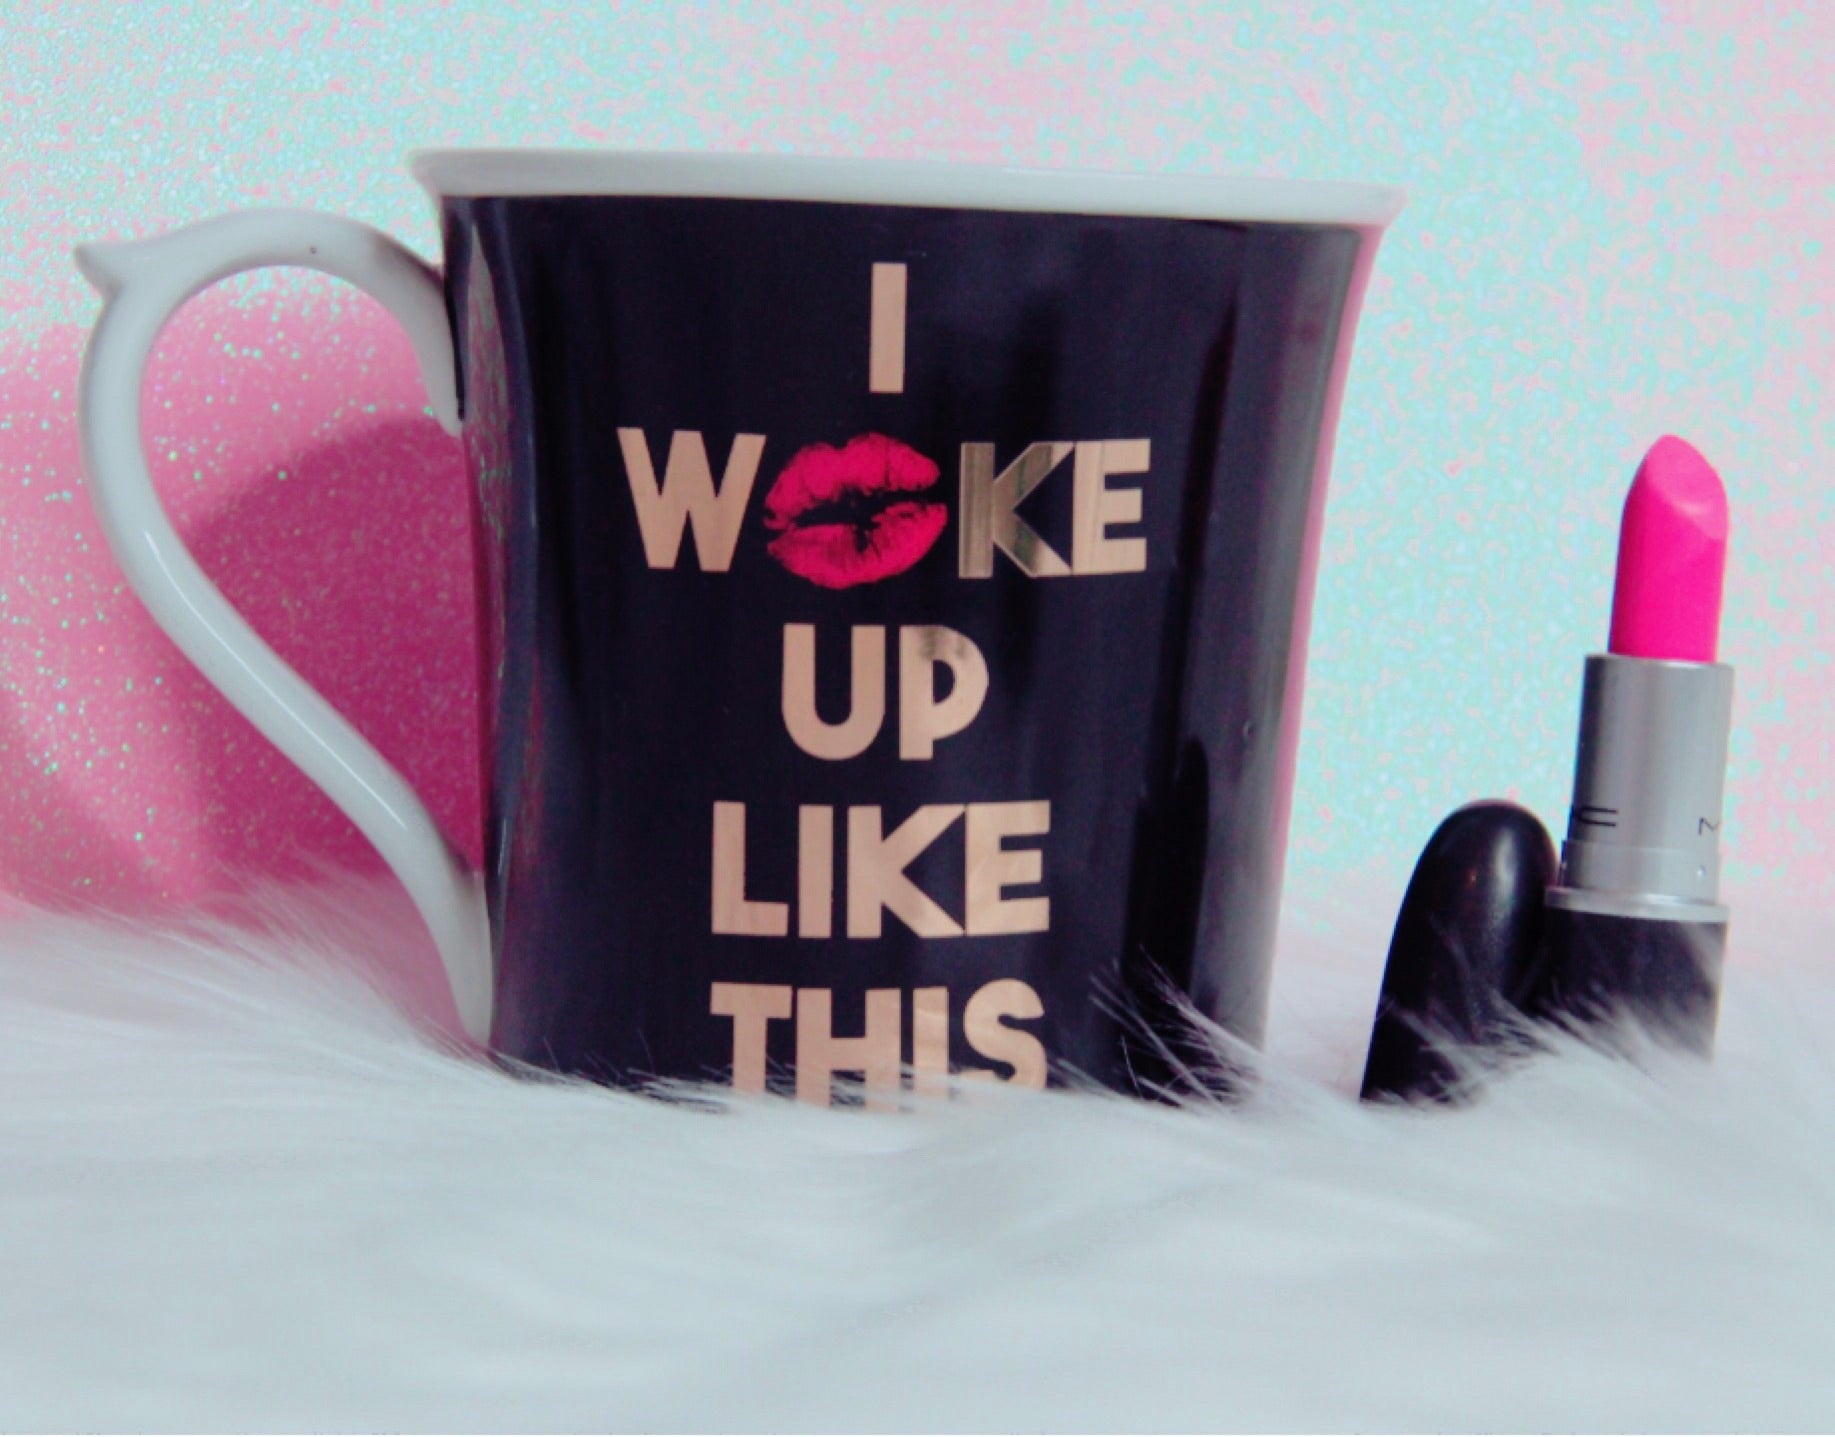 I woke up like this mug - Classy Pink Boutique